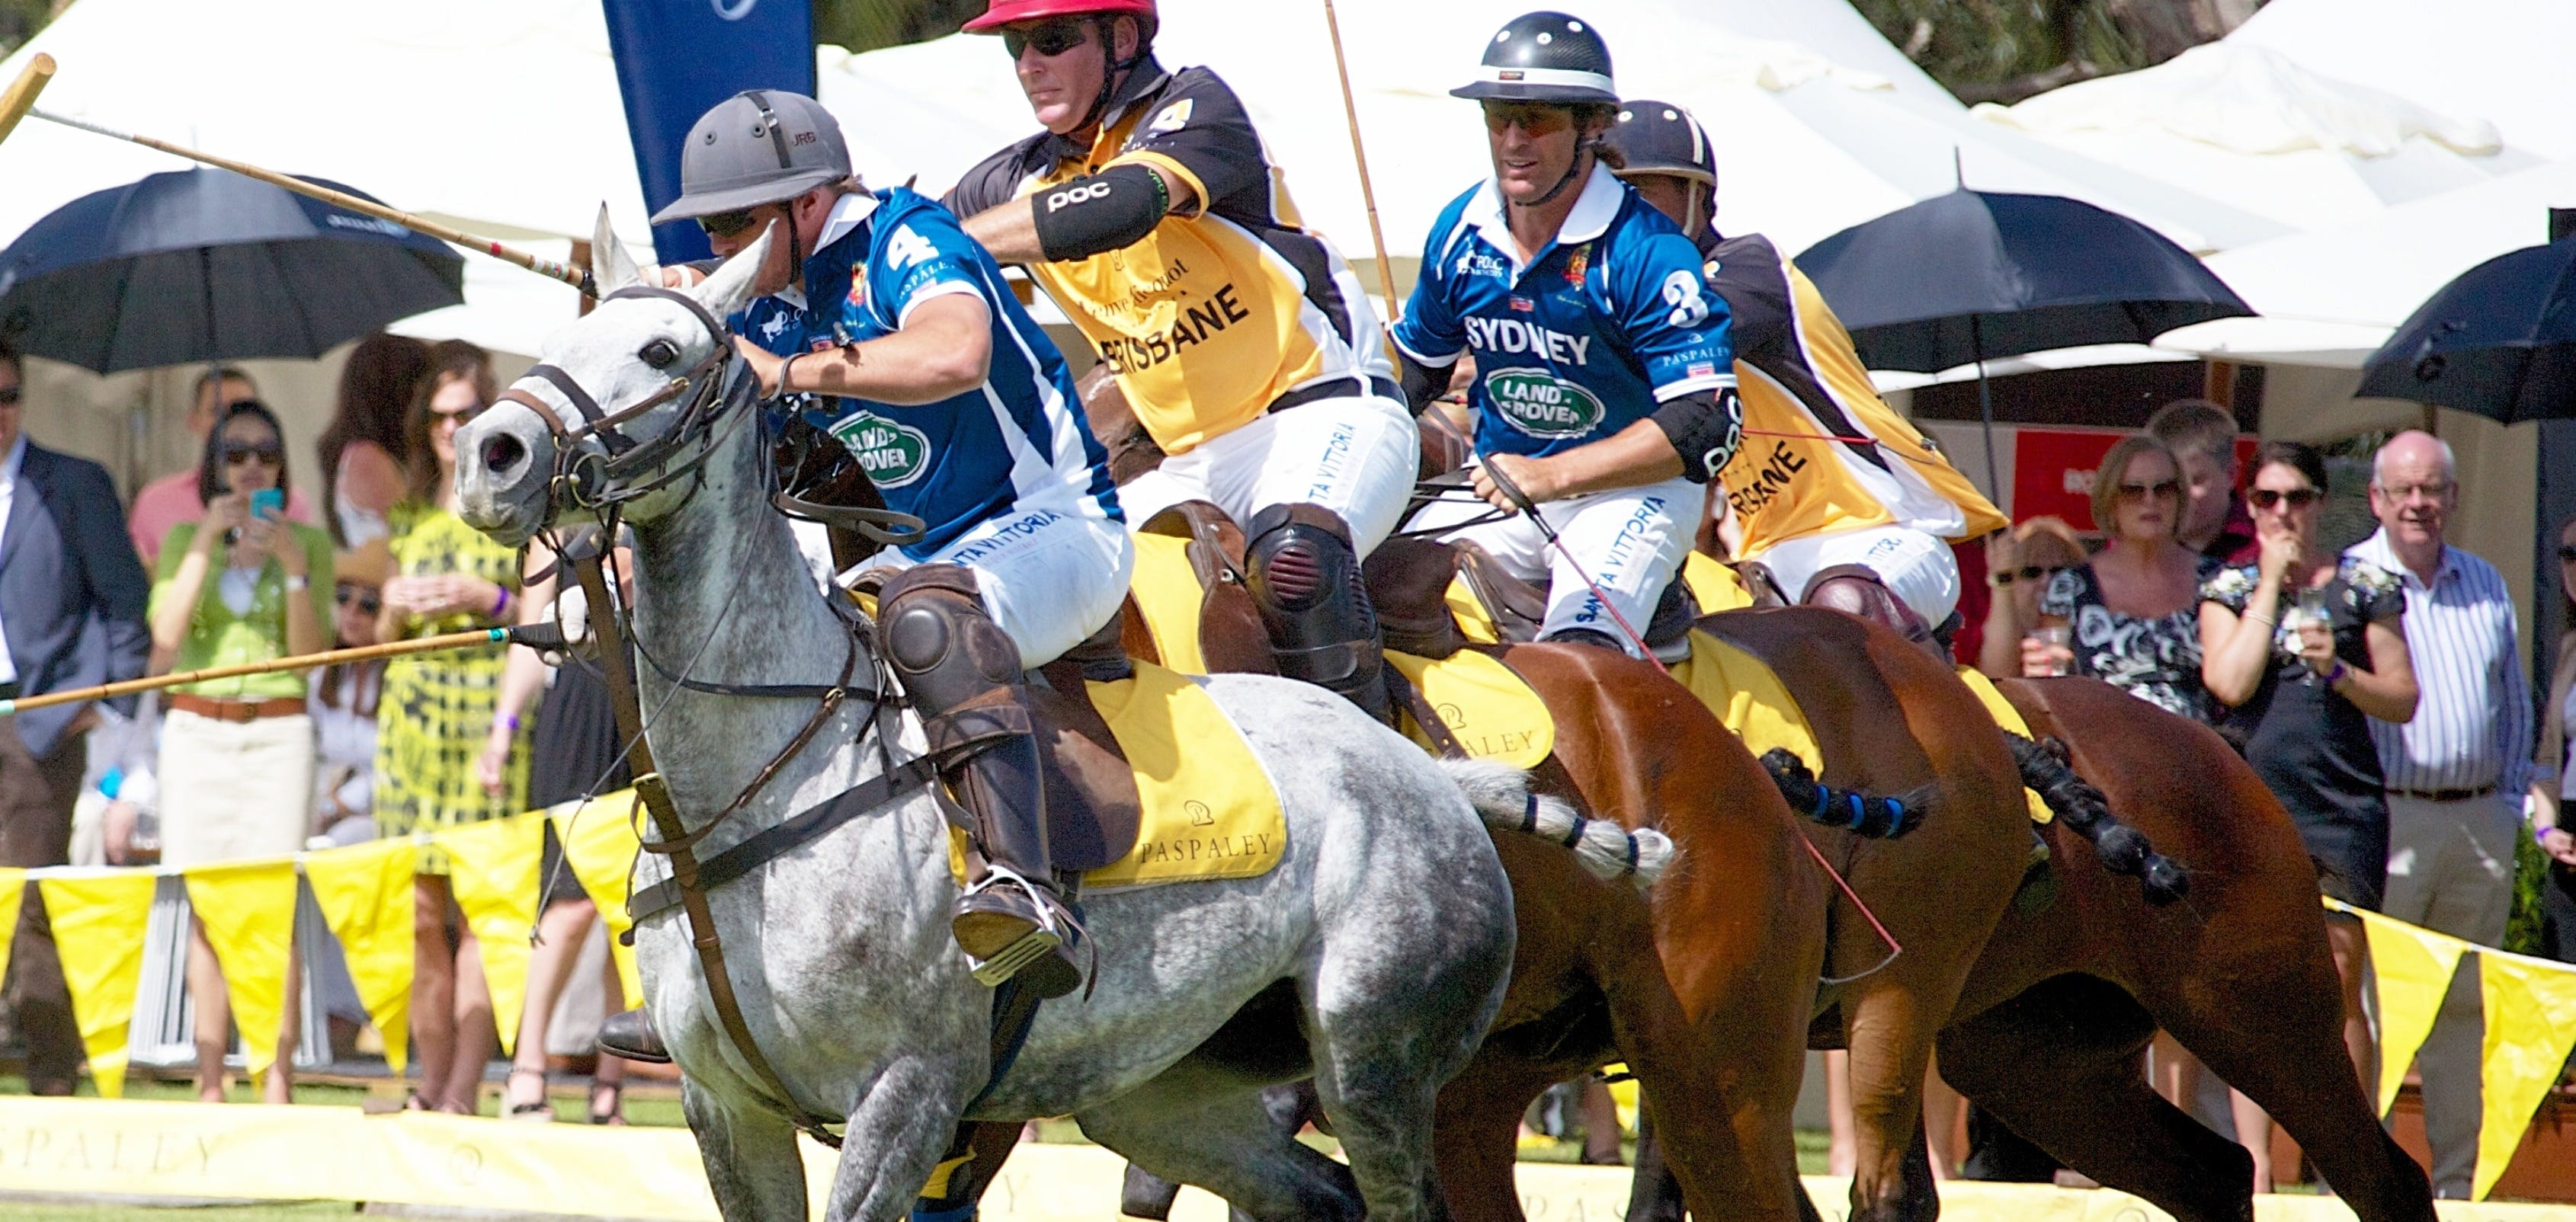 Land Rover Polo in the City Brisbane - Tourism Cairns